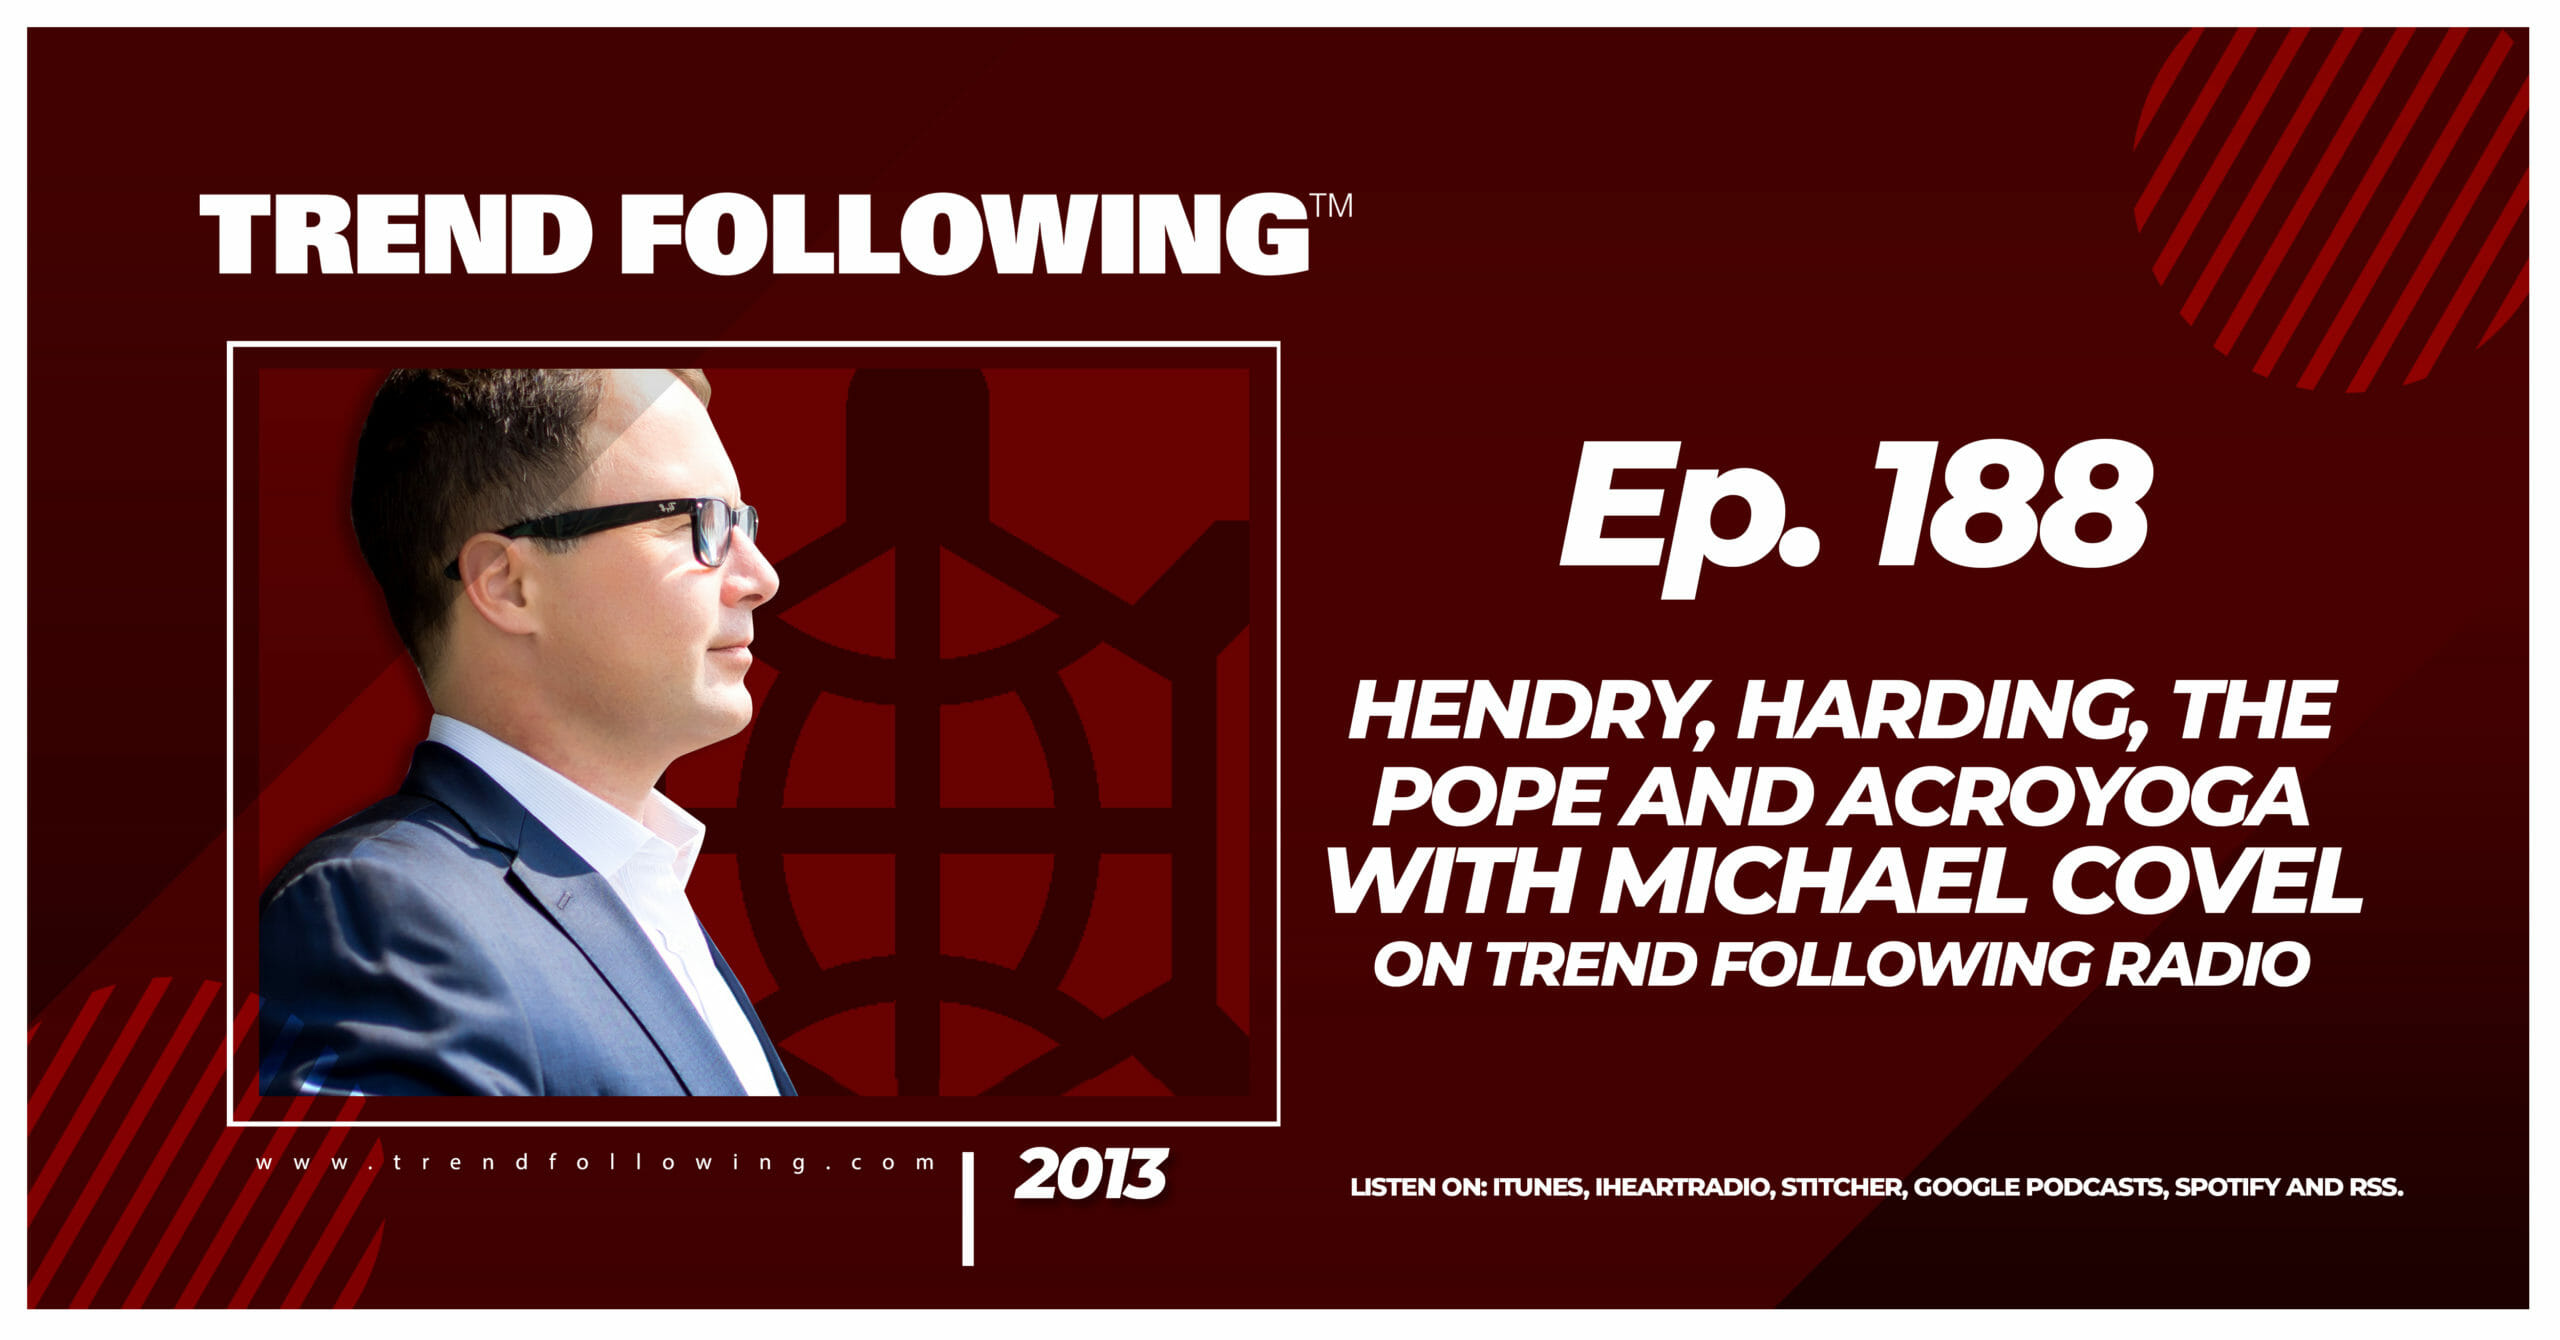 Hendry, Harding, The Pope and Acroyoga with Michael Covel on Trend Following Radio